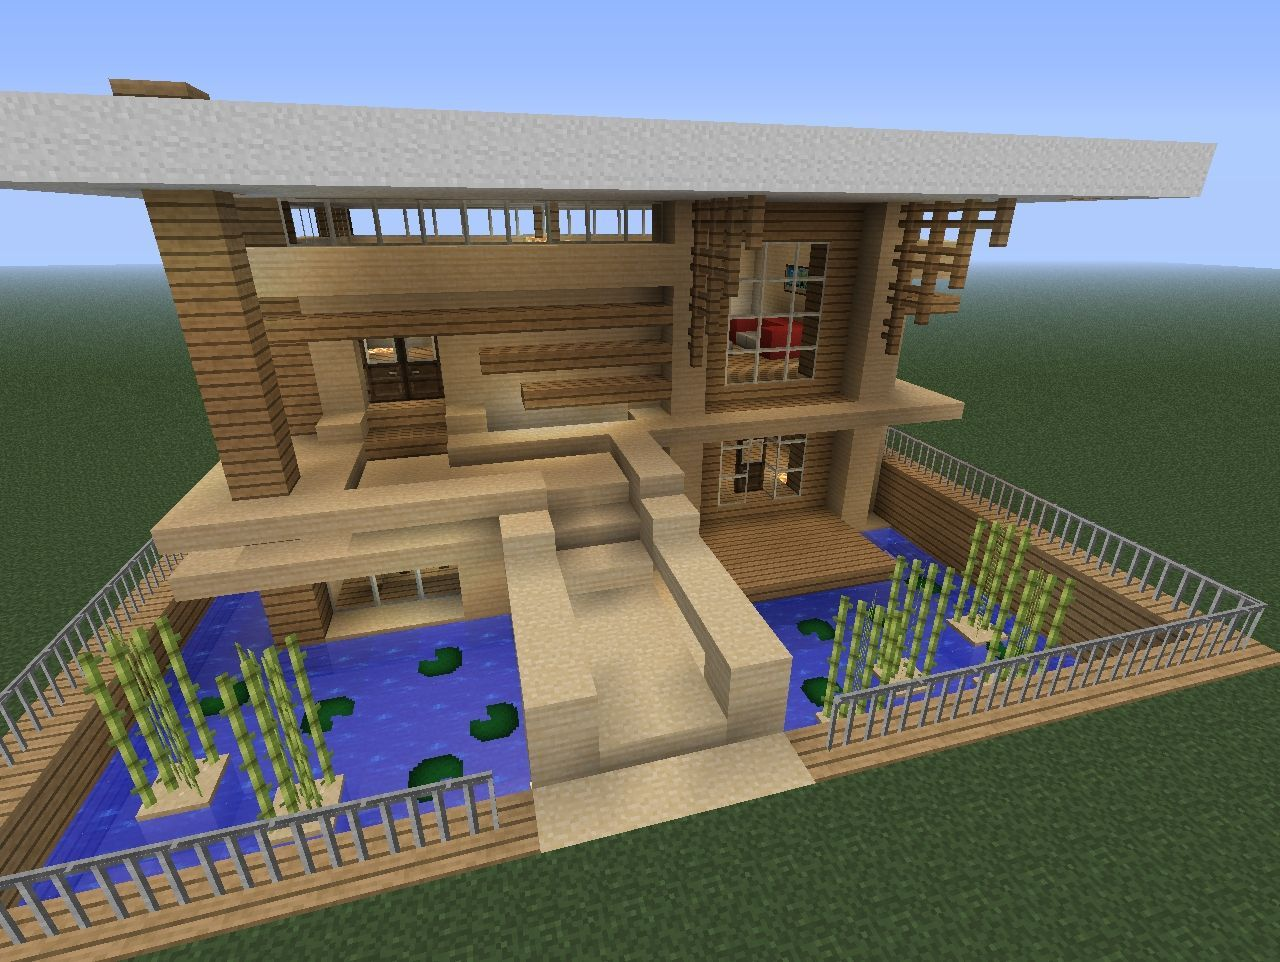 Best 25 minecraft houses ideas on pinterest minecraft minecraft ideas and - Design house minecraft ...